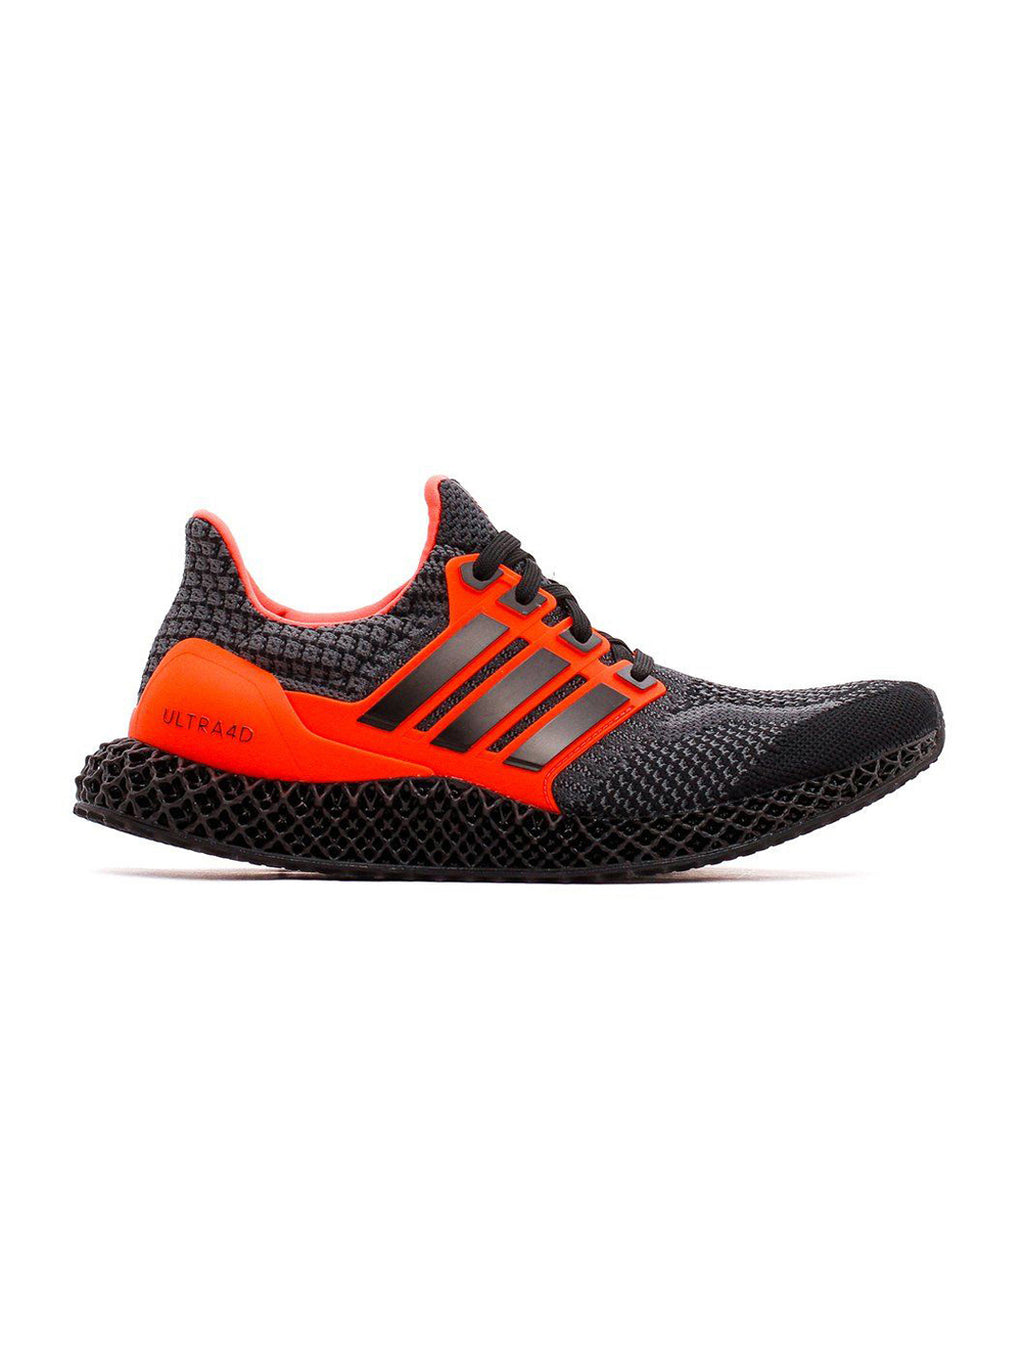 Red & Black Ultra 4D 5.0 Sneakers